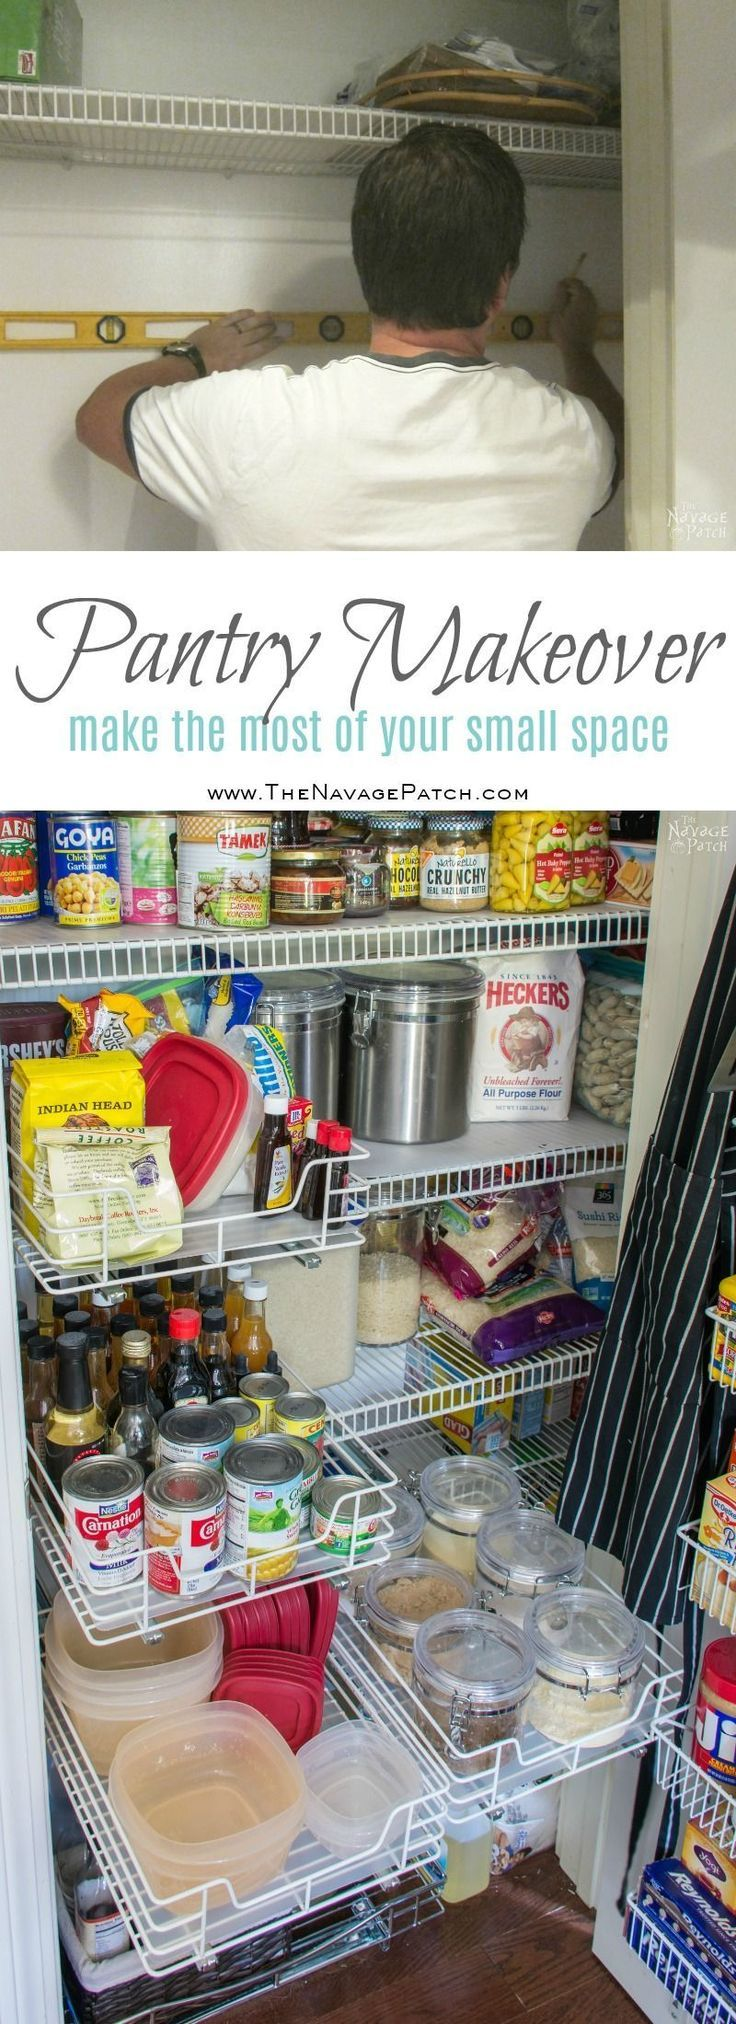 Pantry Makeover And Organization Ideas The Navage Patch Pantry Makeover Small Pantry Organization Diy Pantry